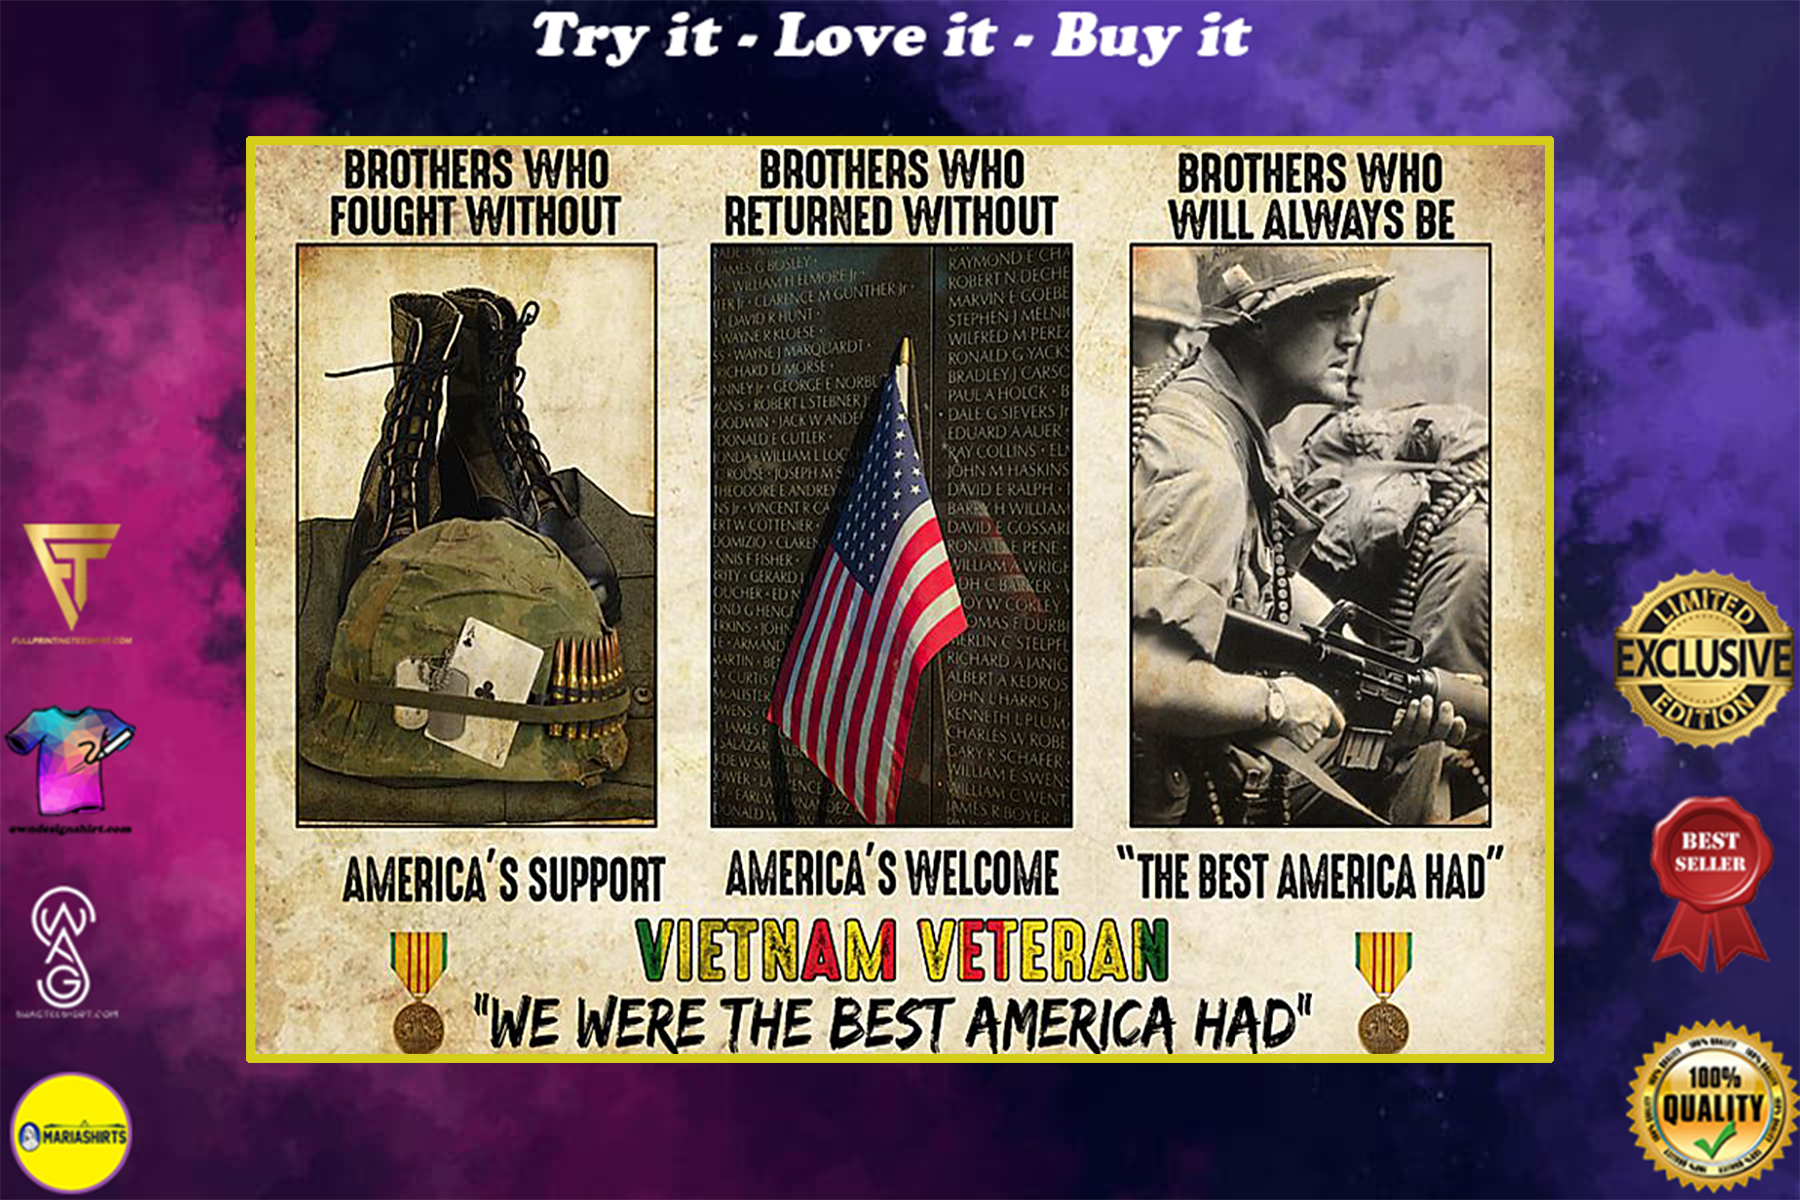 vietnam veteran were the best america had brothers who fought without americas support poster